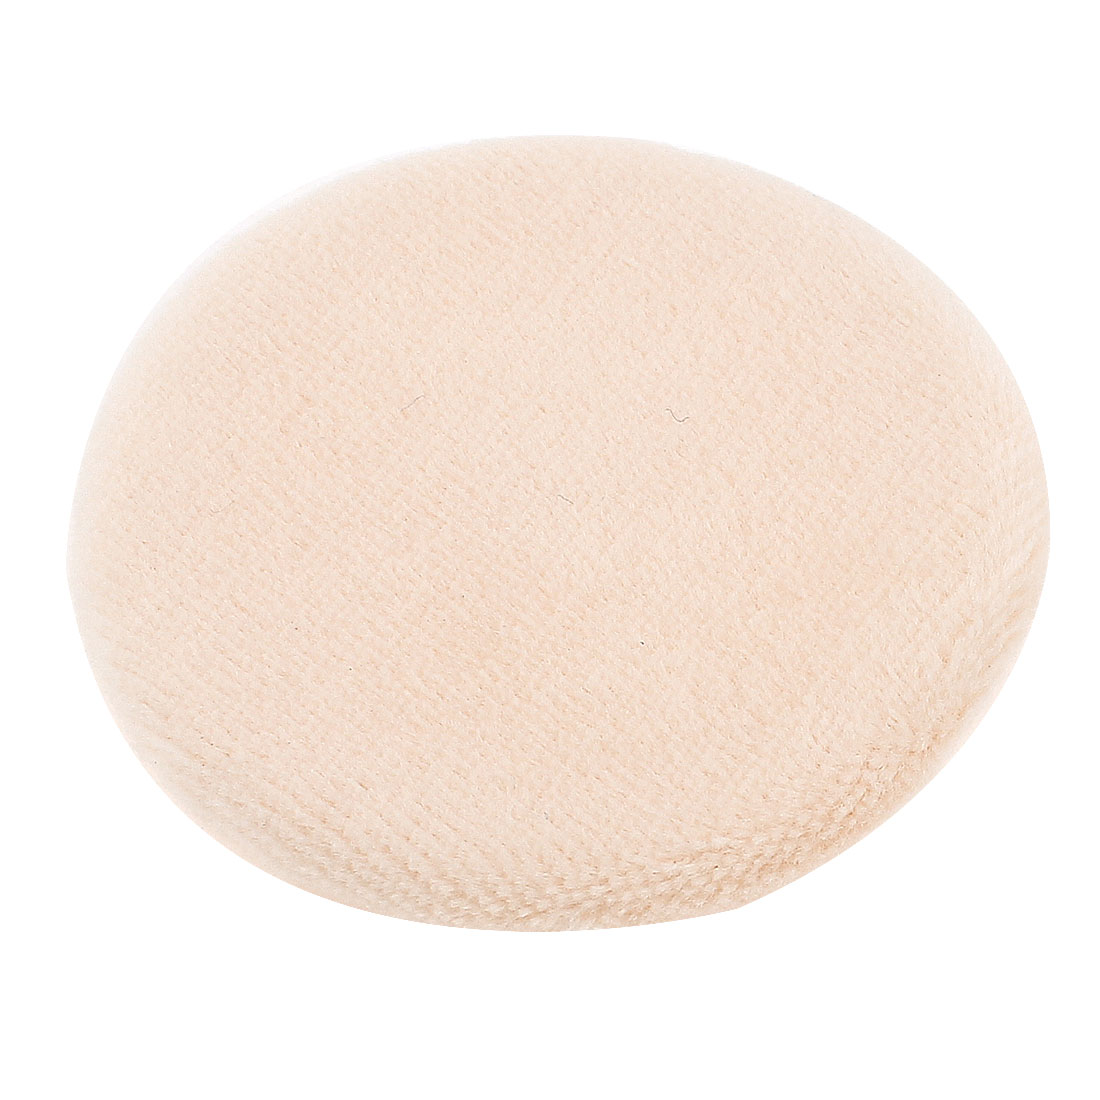 6cm Dia Circle Shaped Pale Apricot Sponge Powder Puff Pad Neat Pat for Lady